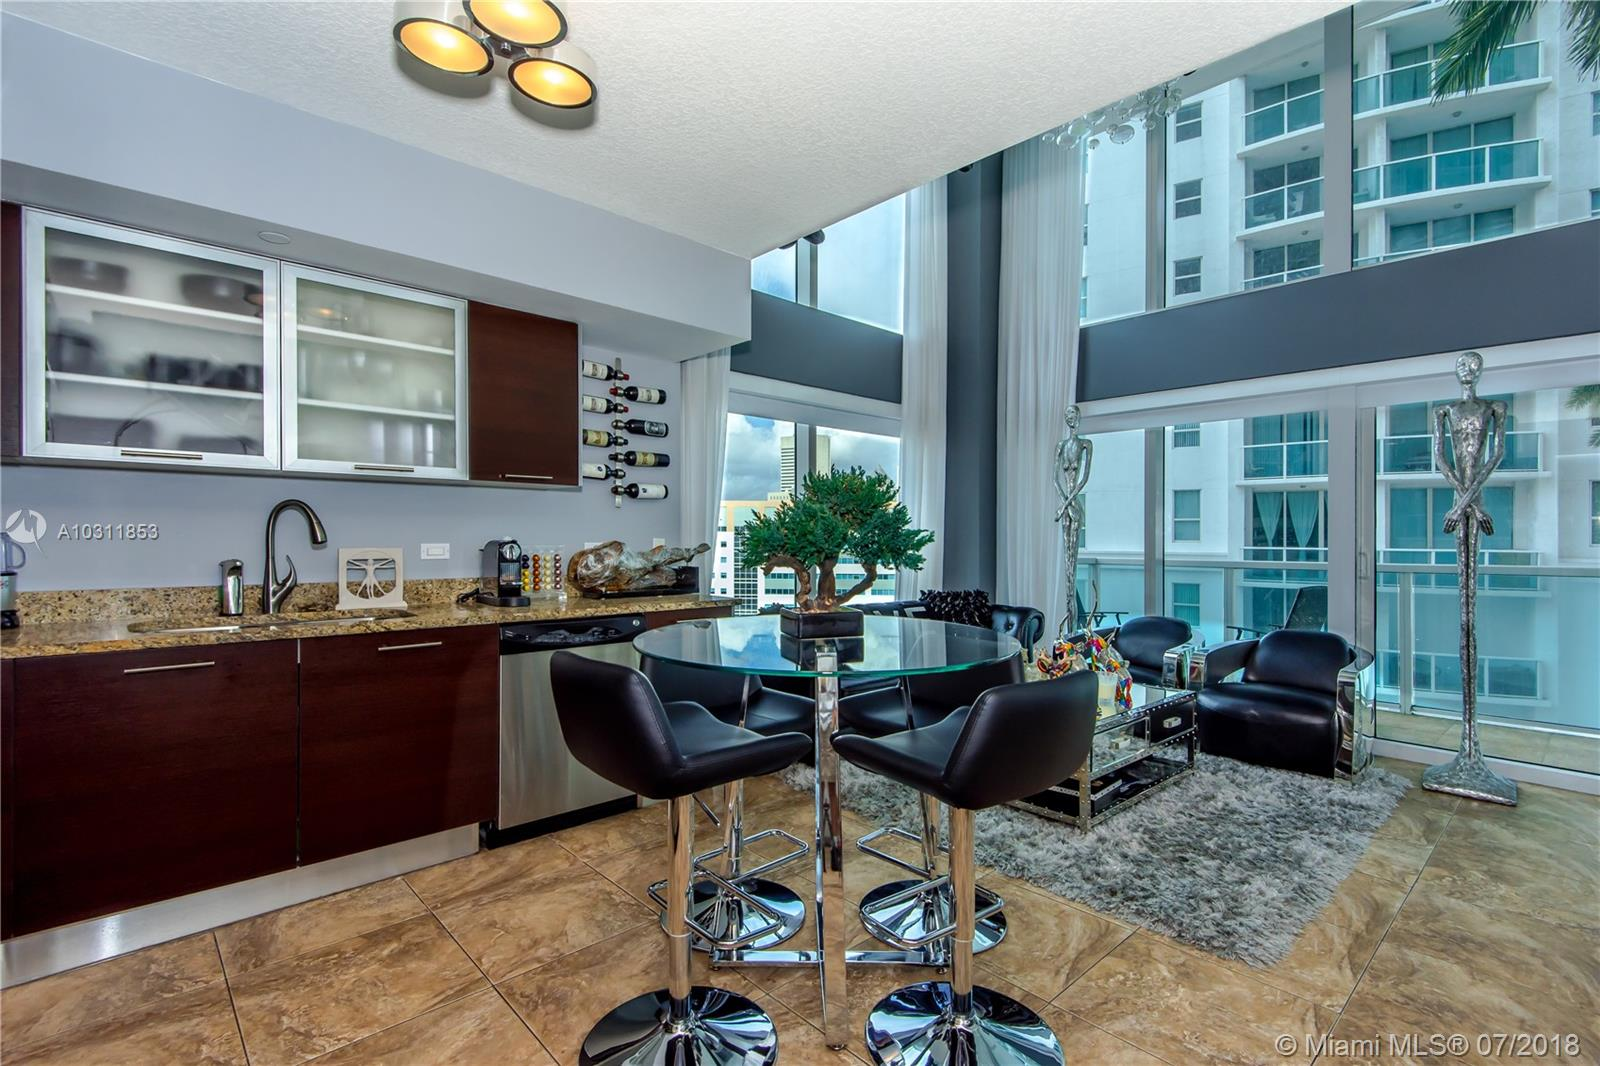 41 SE 5th Street, Miami, FL 33131-2504, Brickell on the River South #717, Brickell, Miami A10311853 image #9